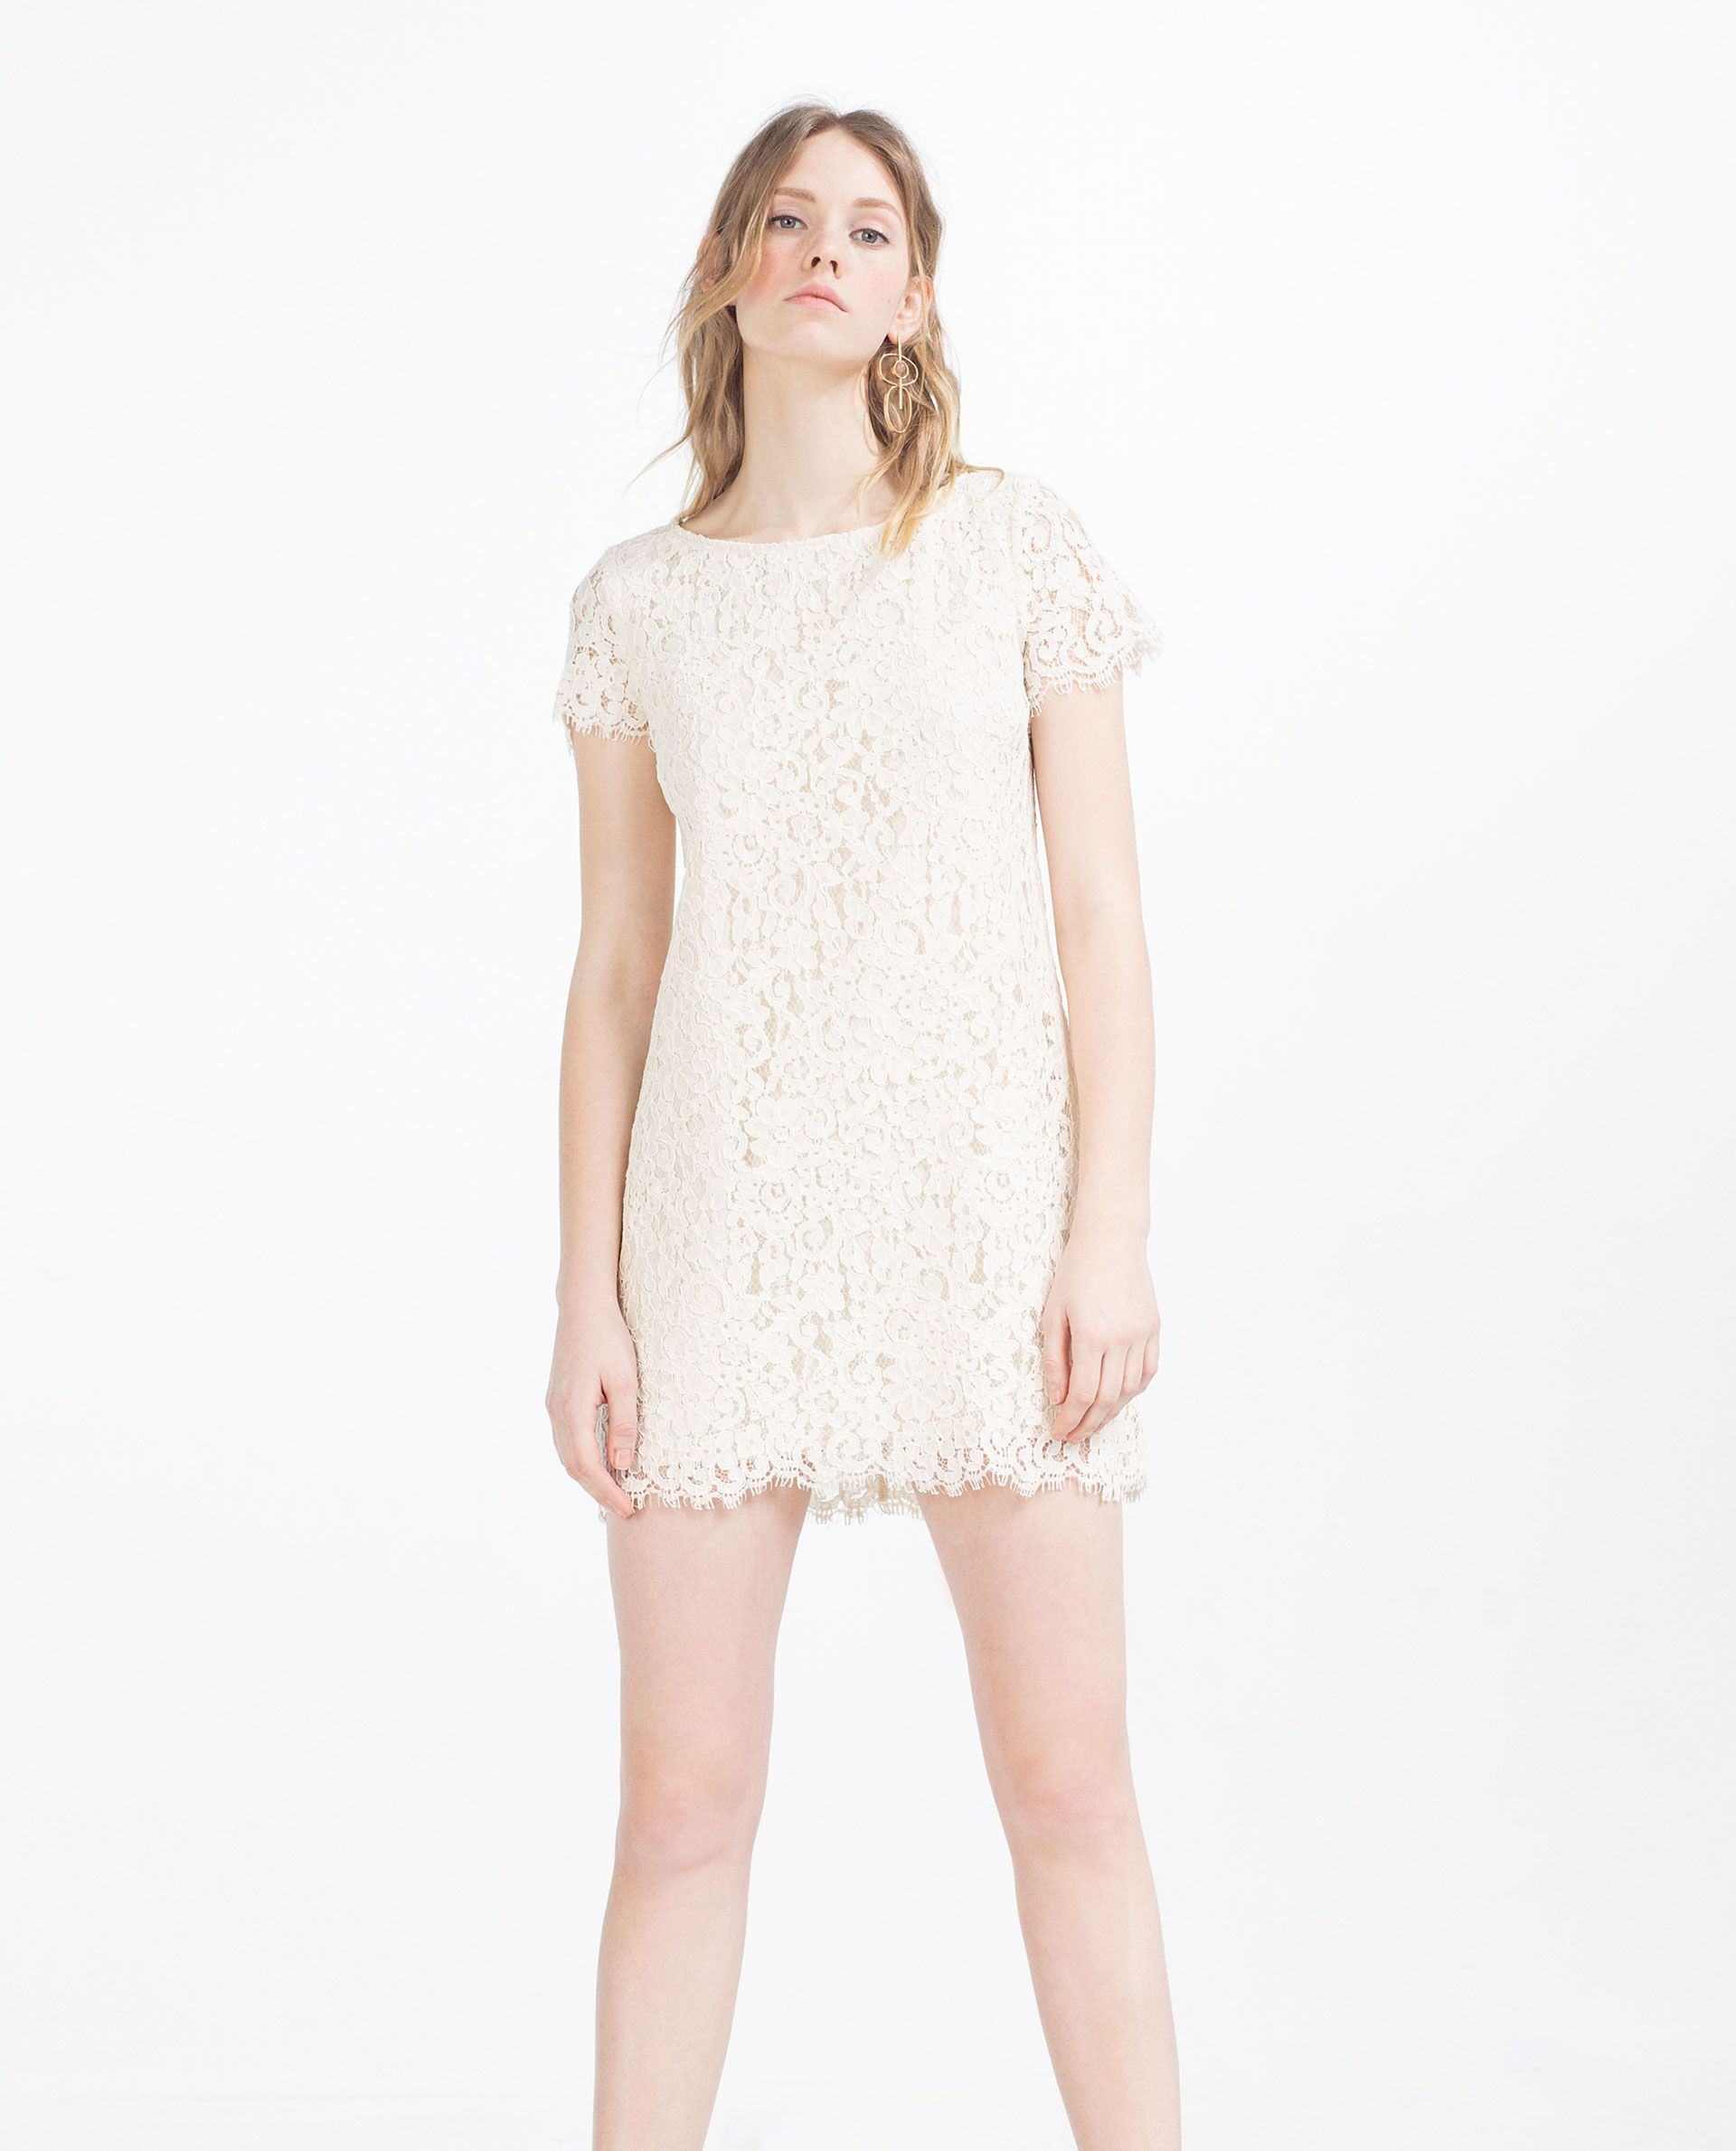 Image 1 of lace dress from zara zest pinterest lace dress image 1 of lace dress from zara ombrellifo Choice Image